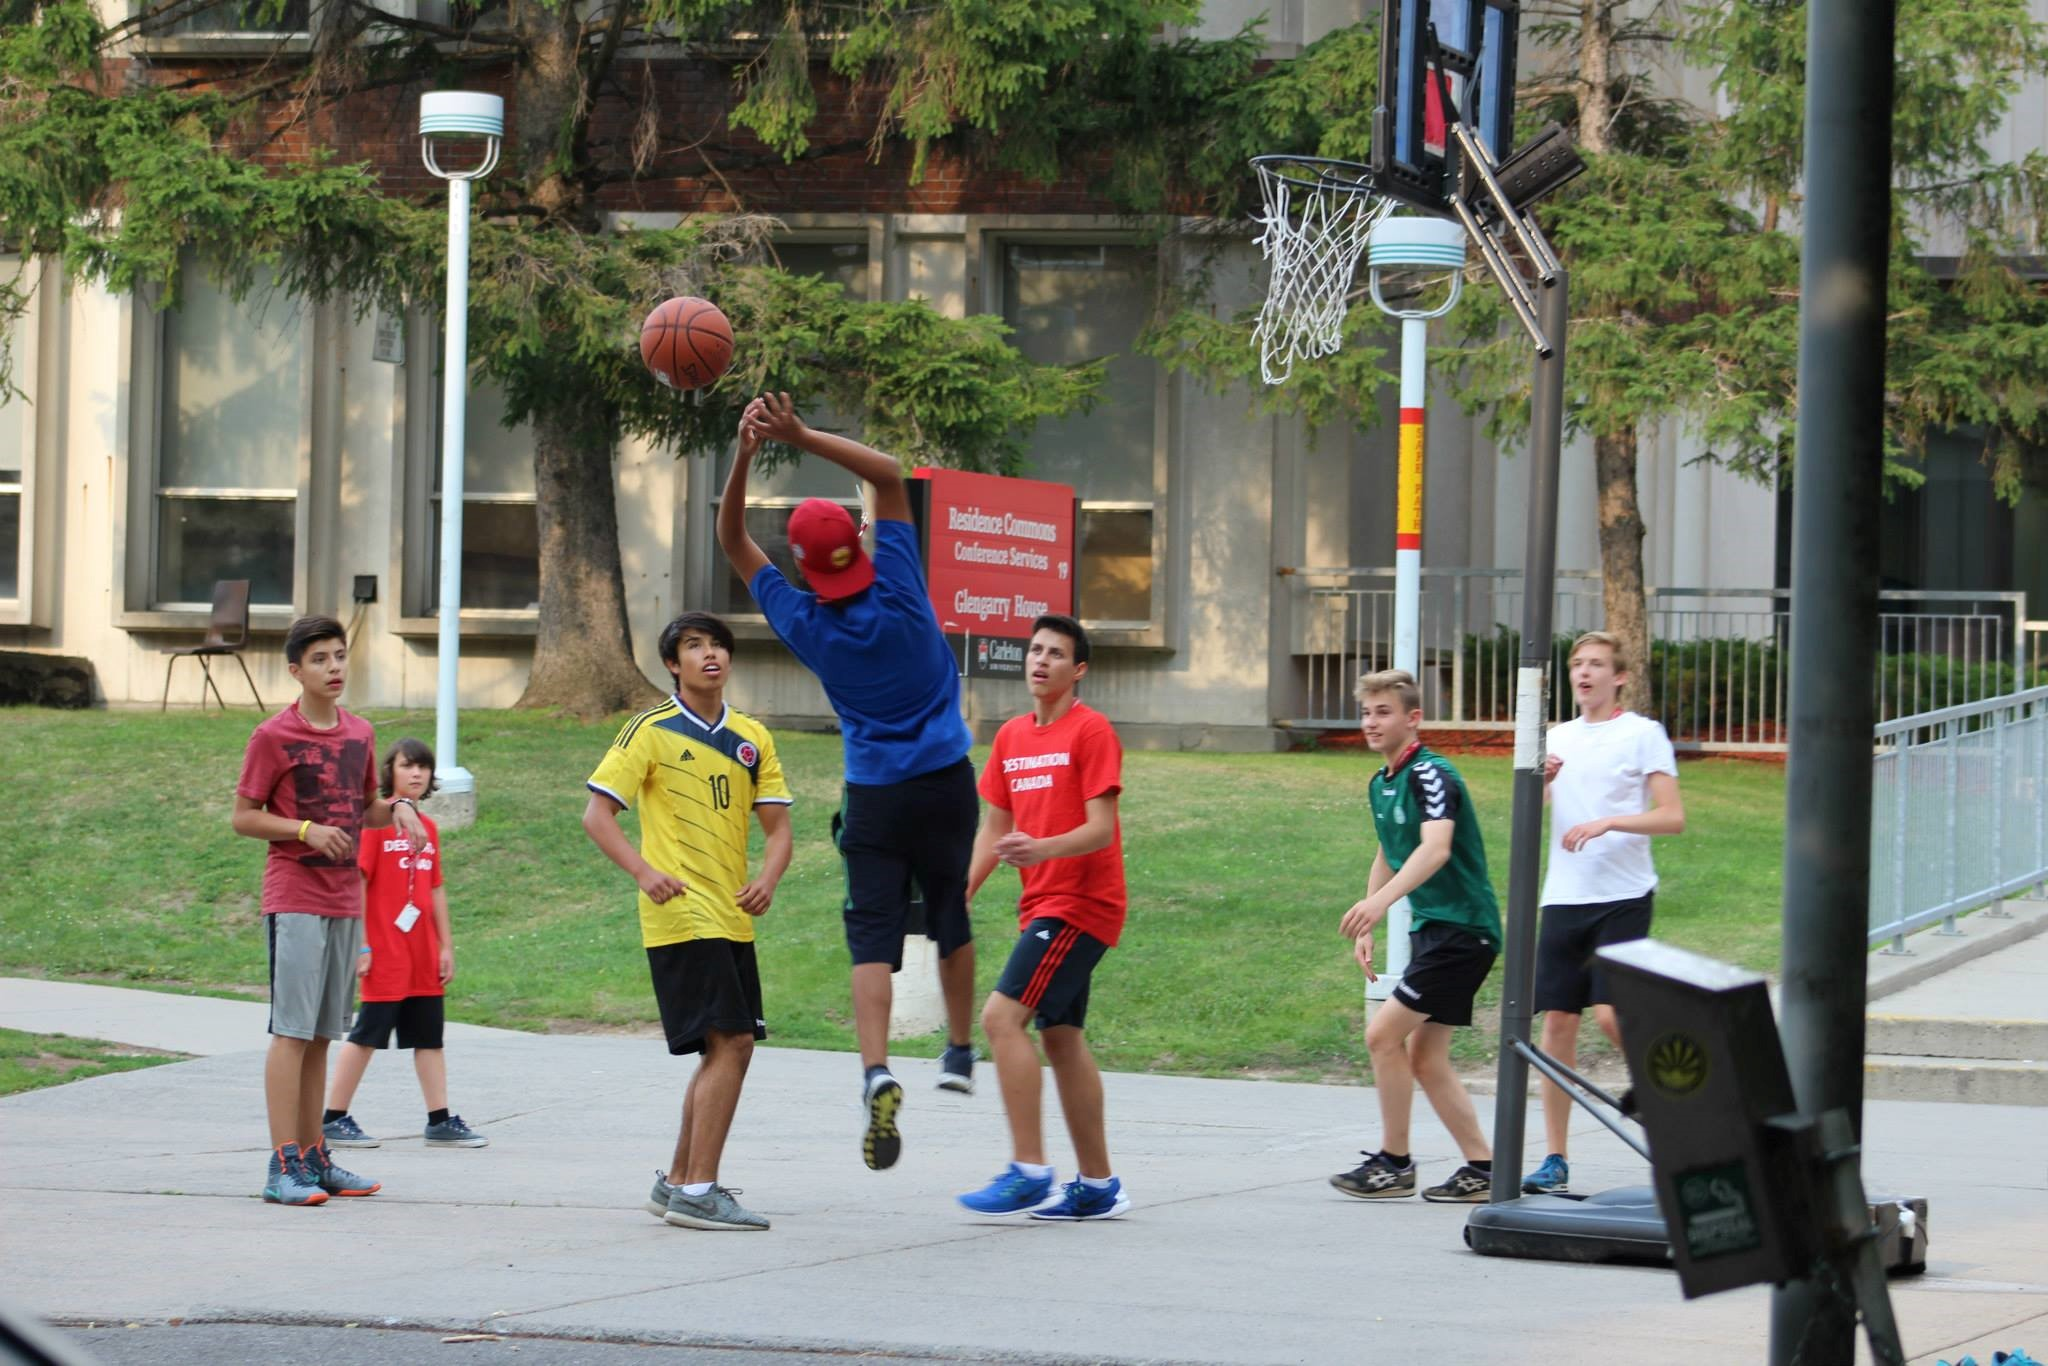 Destination Canada students playing a game of basketball